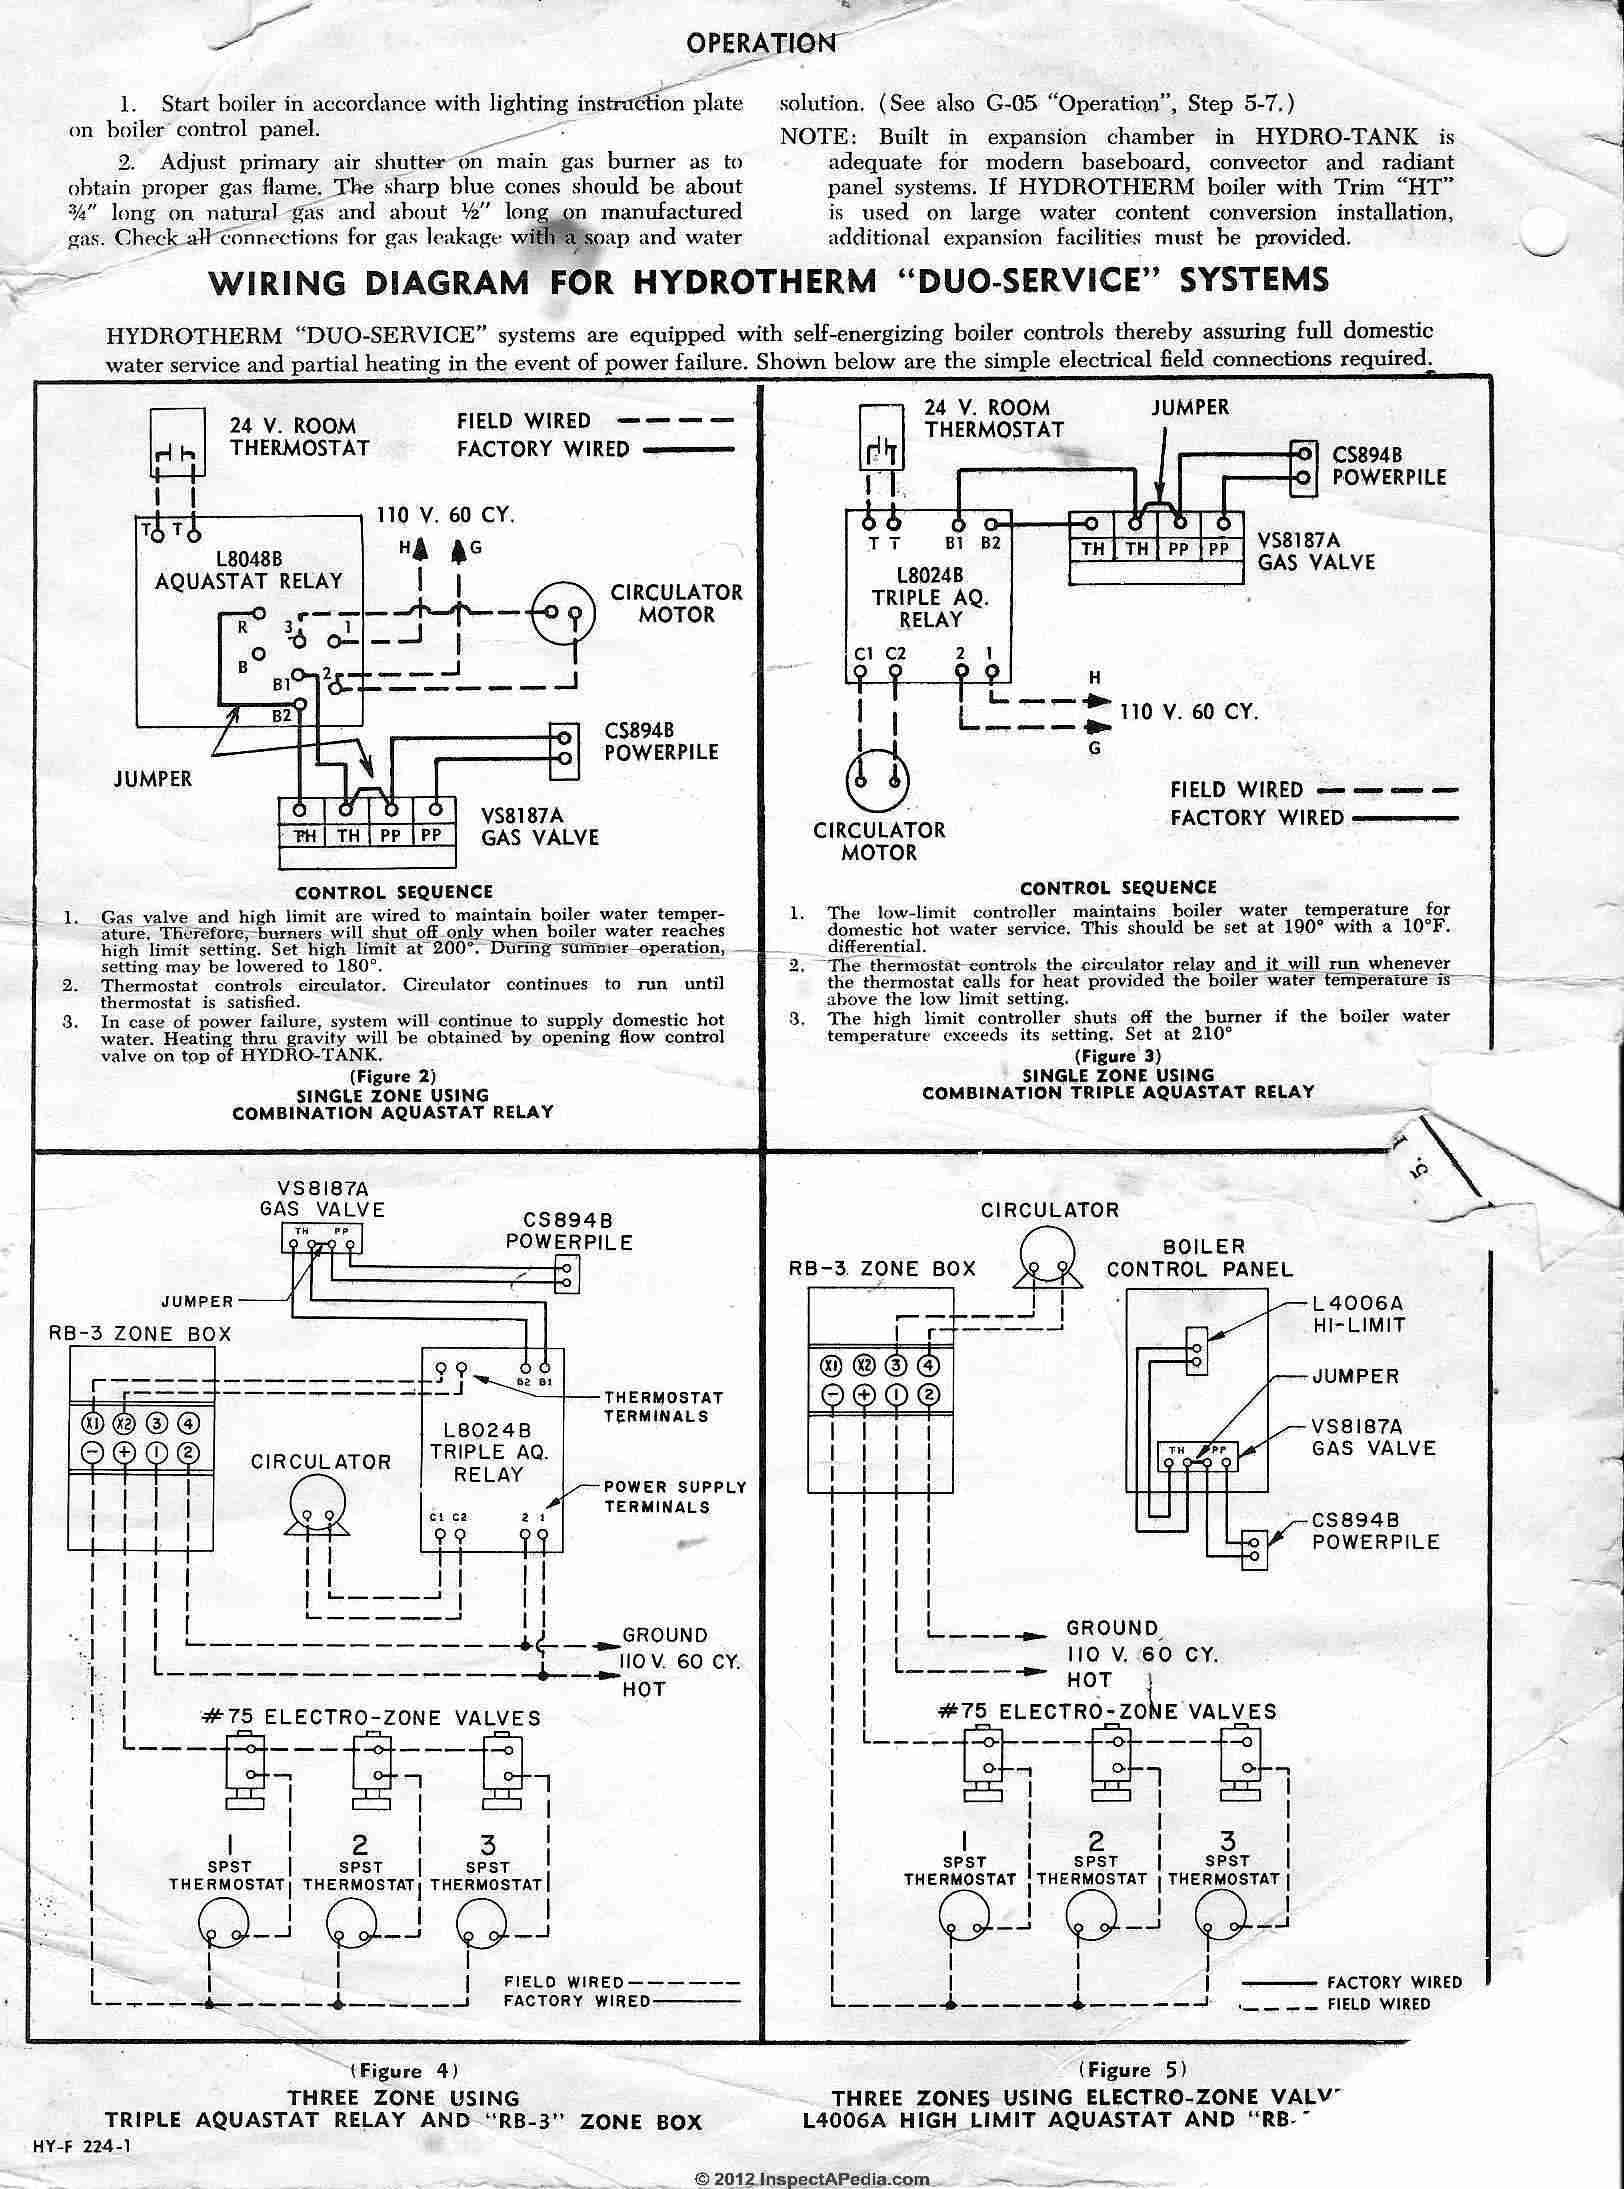 L8024B_Aquastat_0422_DJFcs heating boiler aquastat control diagnosis, troubleshooting, repair wiring diagram for honeywell r8184m at gsmportal.co